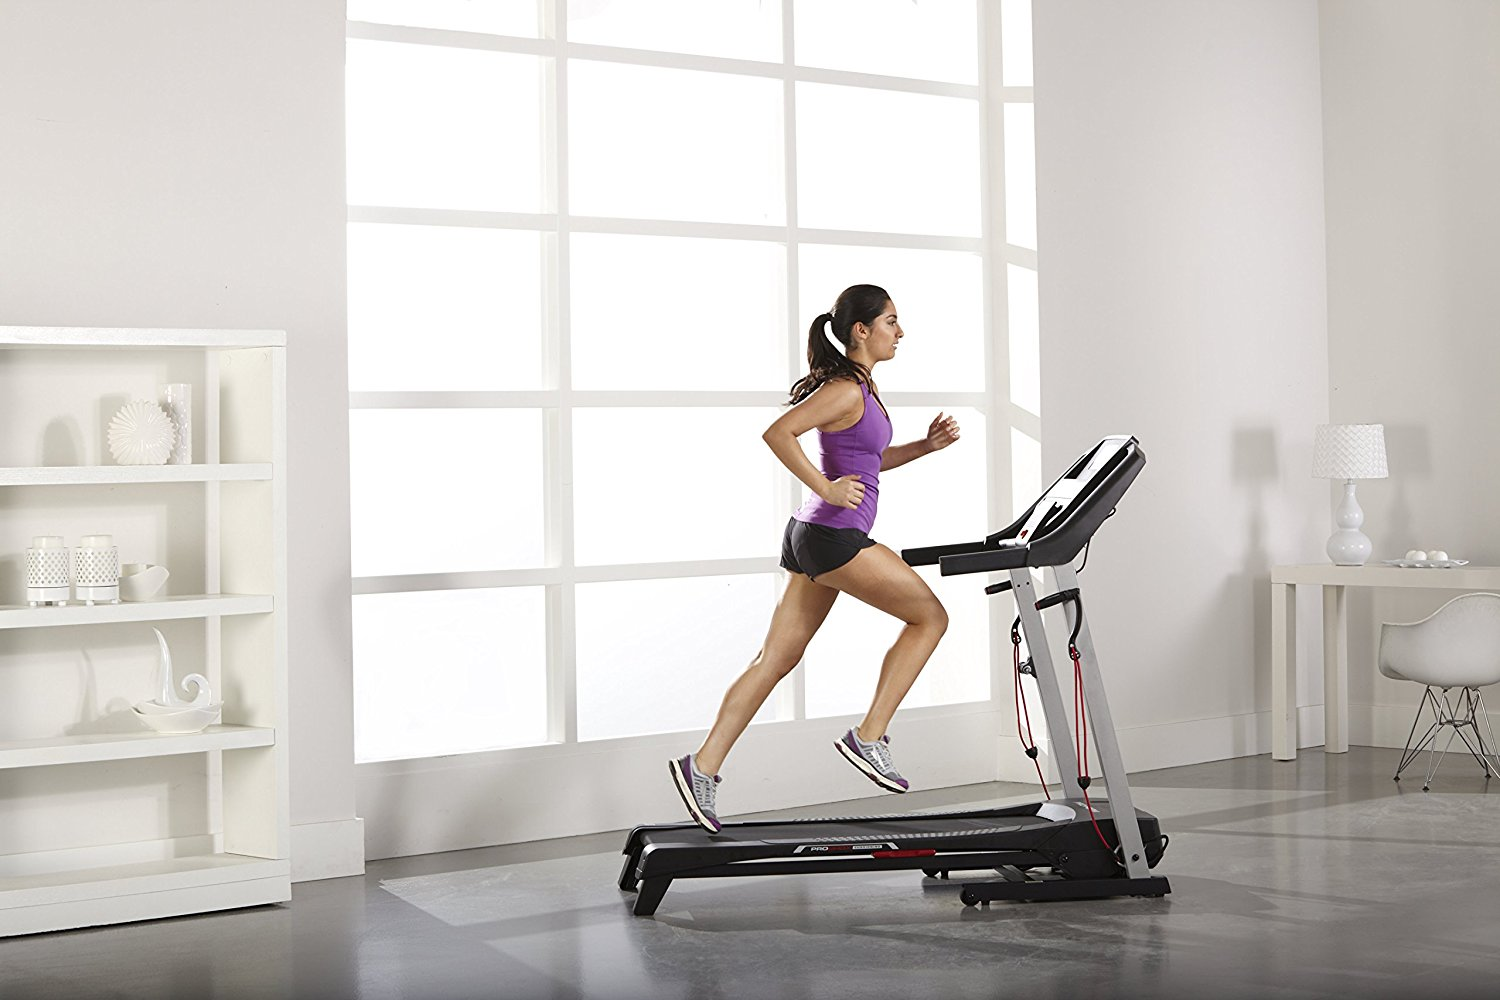 Treadmills: Which One to Buy for Running / Home Workouts?